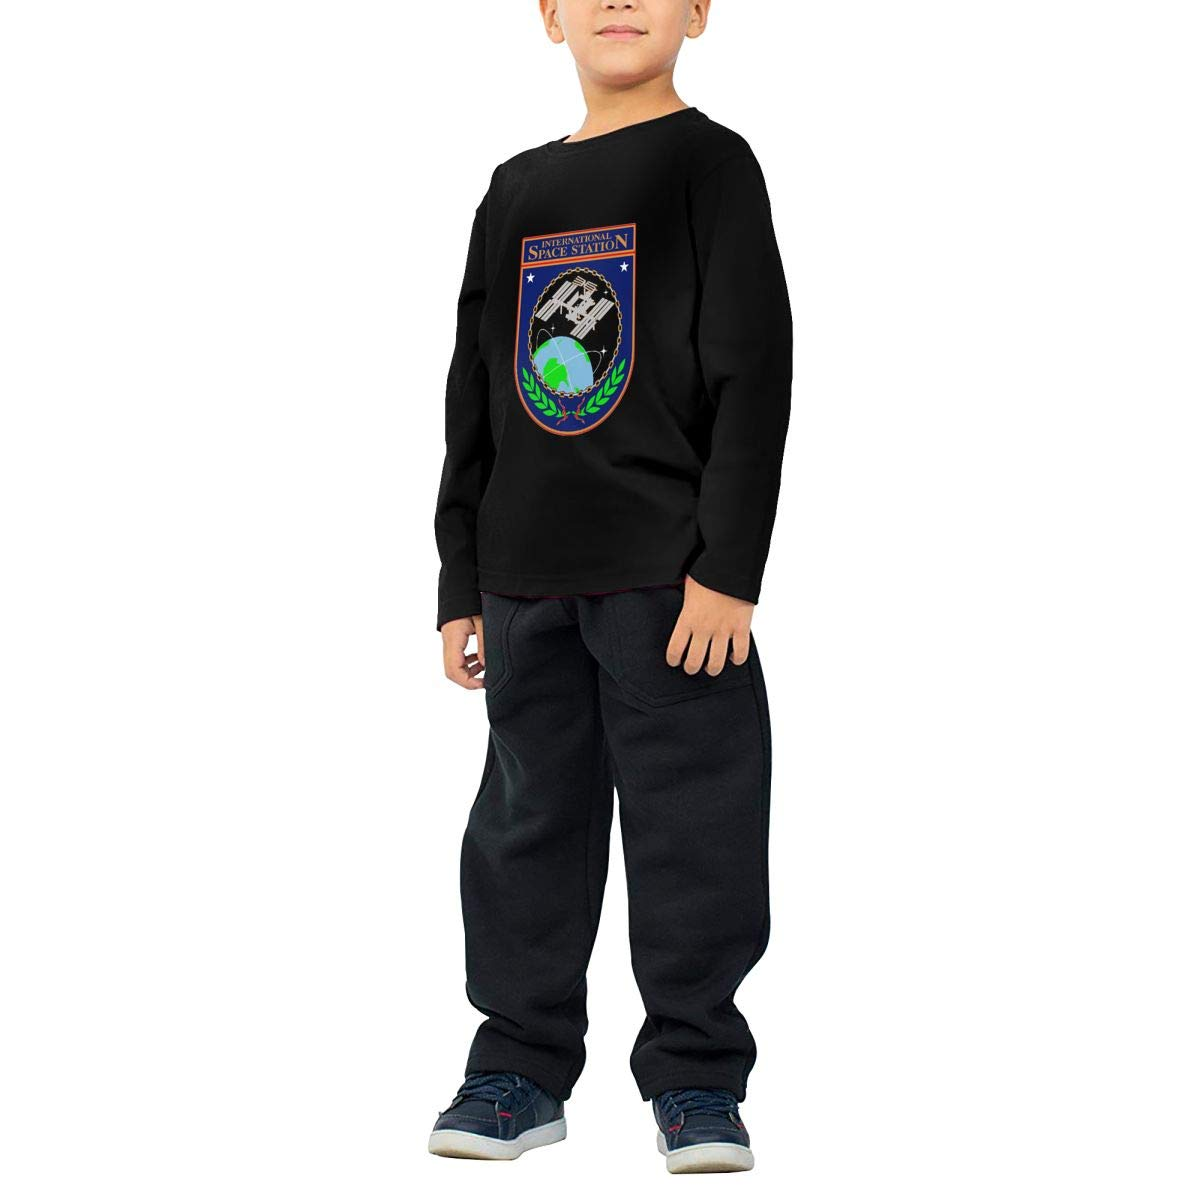 International Space Station Official Logo Childrens Long Sleeve T-Shirt Boys Cotton Tee Tops